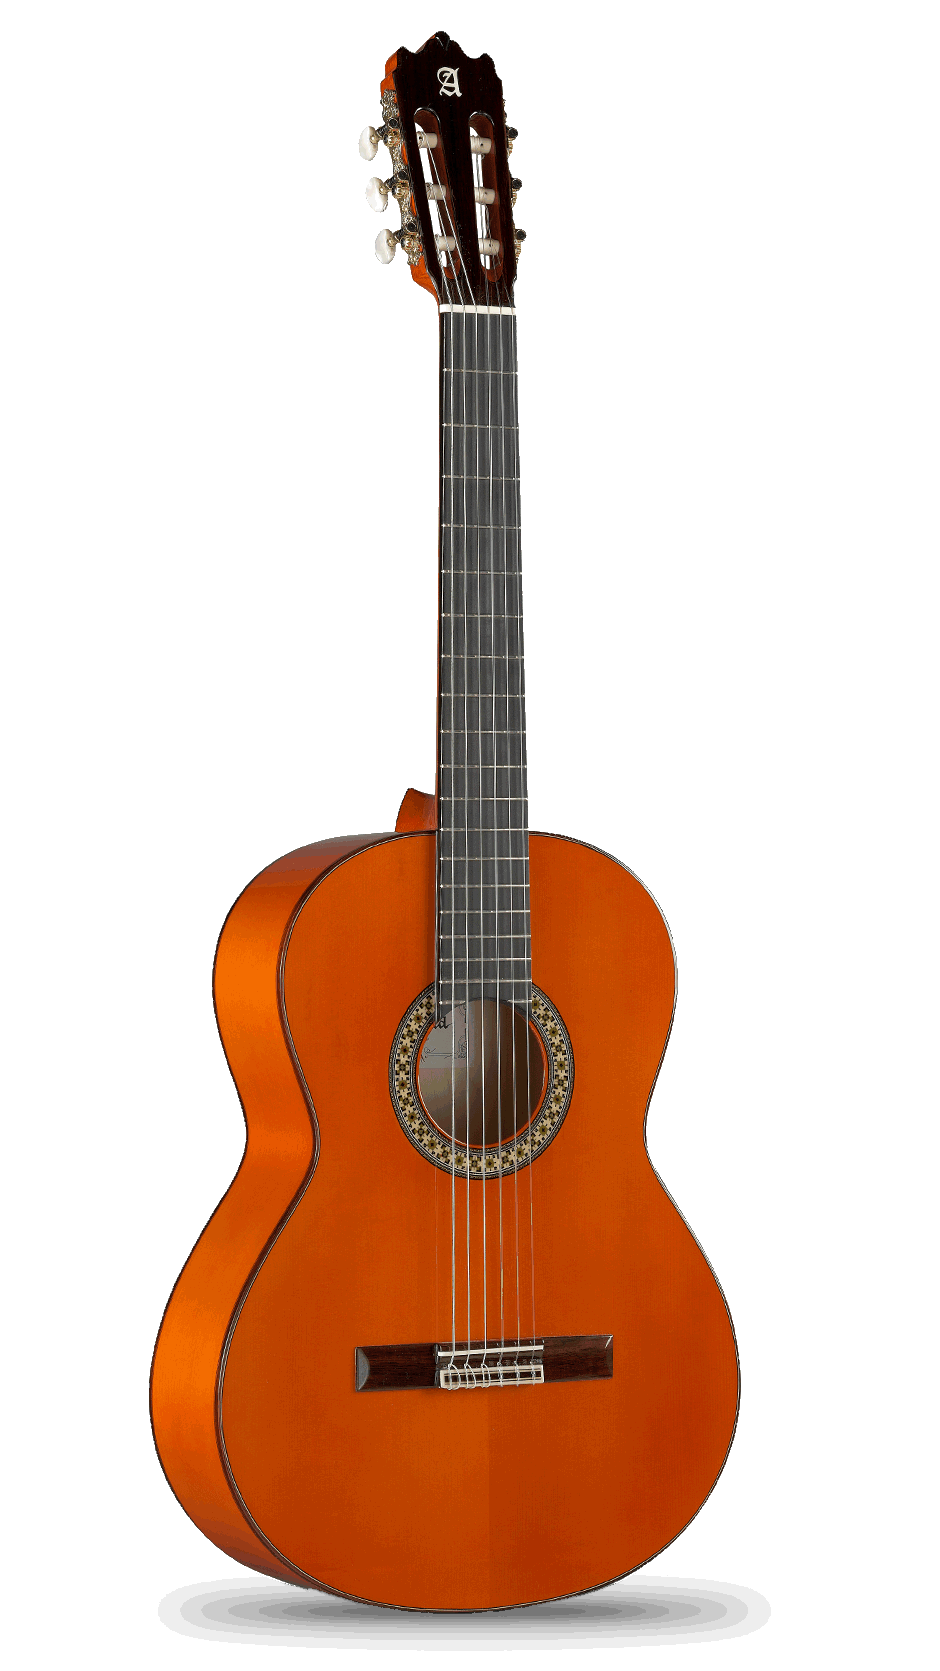 Flamenco guitars of conservatory line